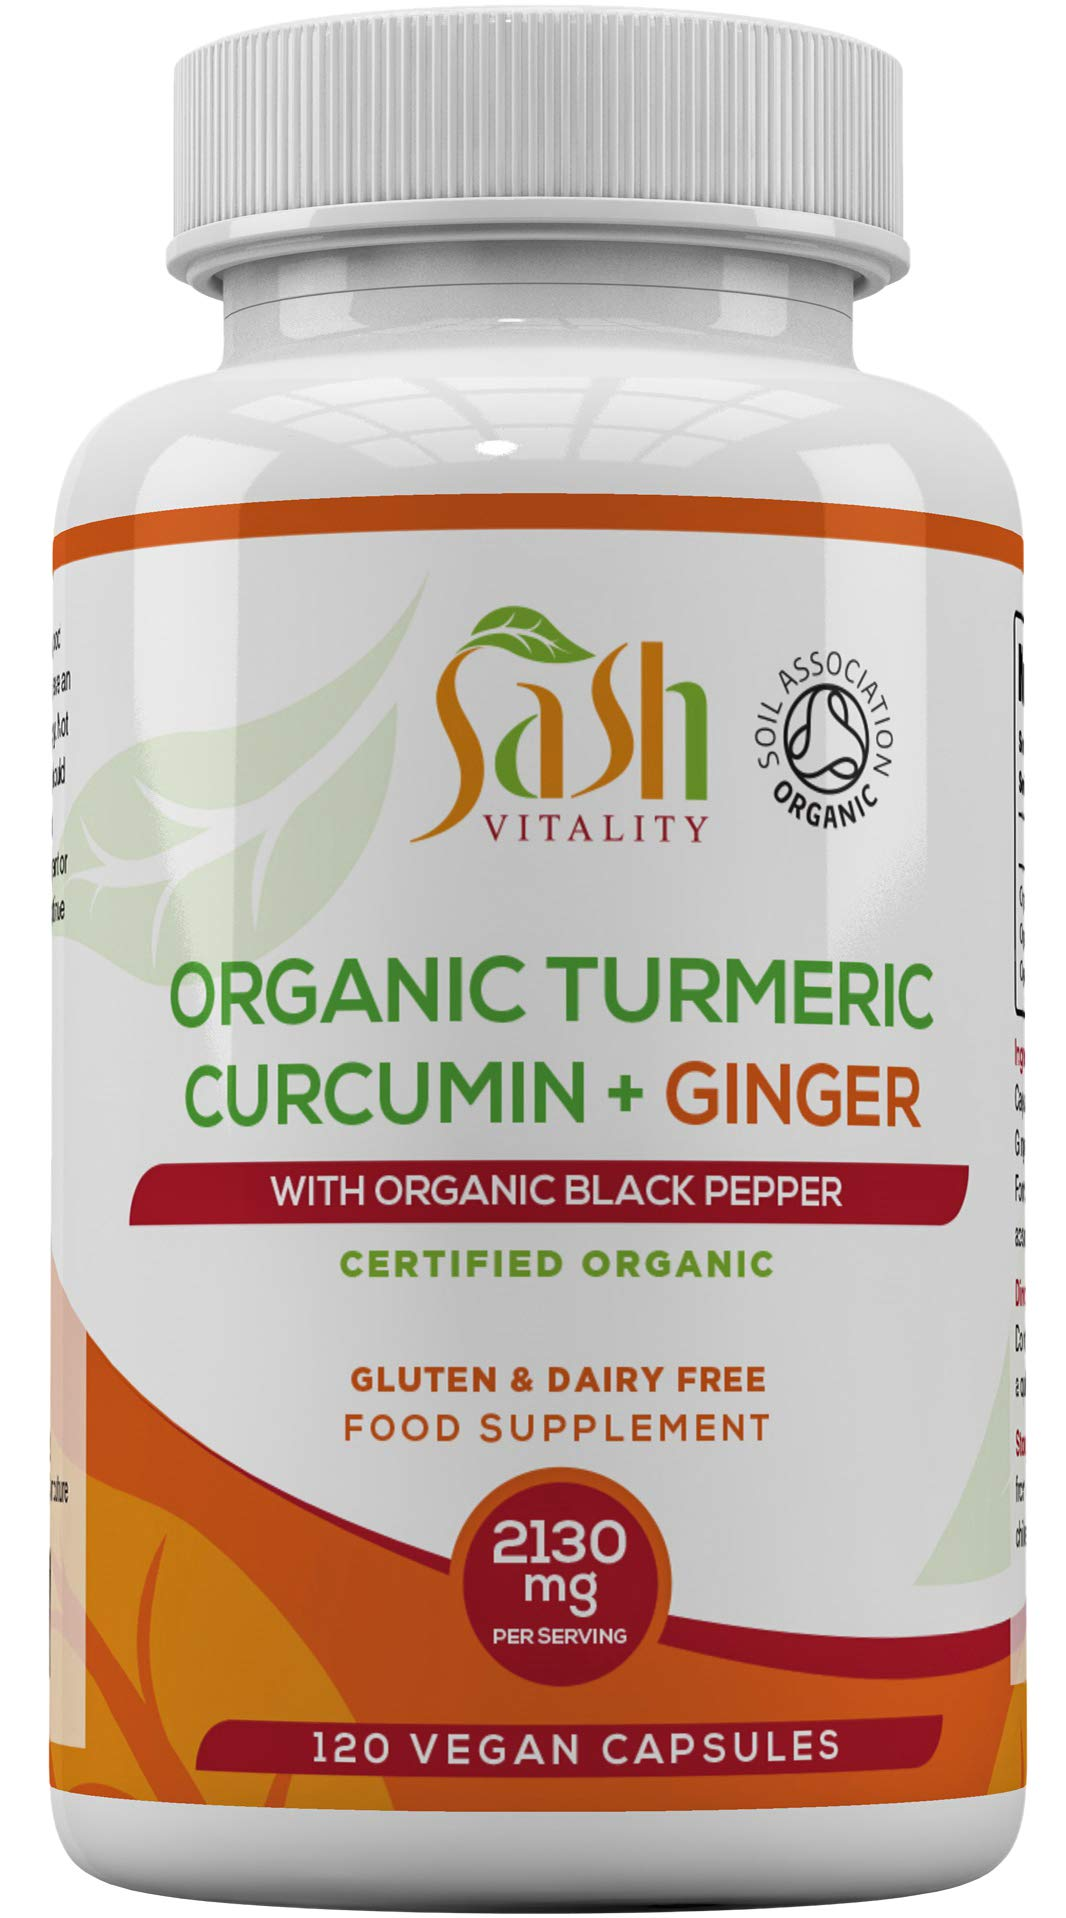 Organic Turmeric Curcumin 2130mg with Black Pepper & Ginger | 120 Vegan Turmeric Capsules High Strength | Immune System Support | Soil Association Certified Organic | UK Made Sash Vitality